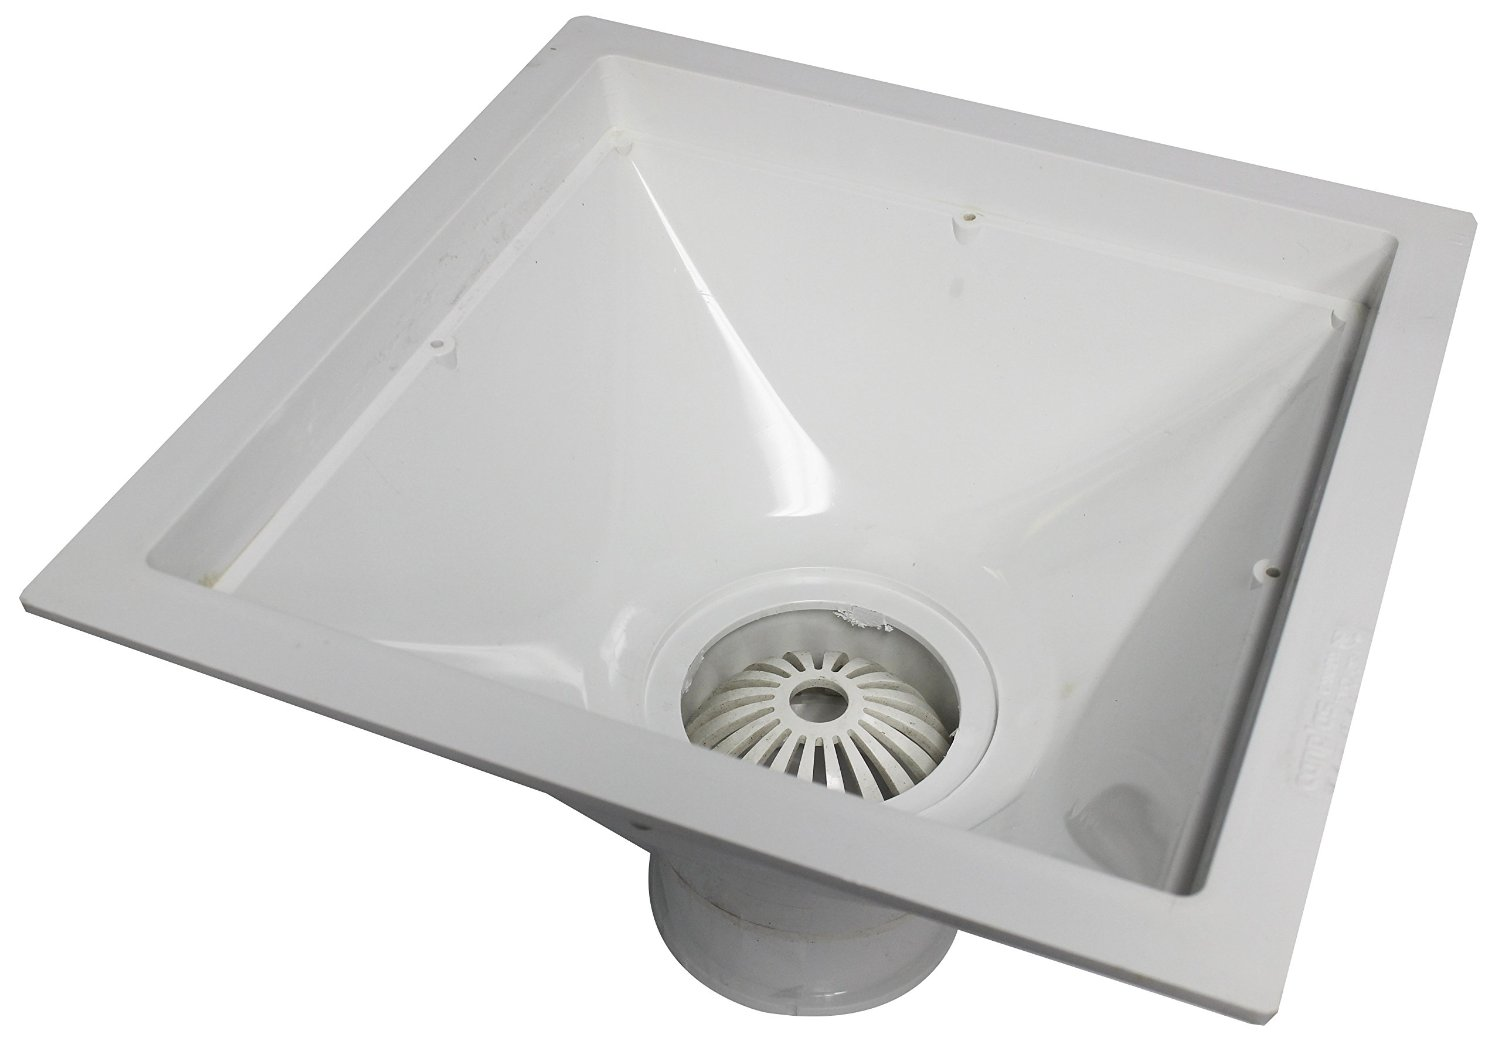 Endura 394723 12-Inch by 12-Inch by 6-Inch PVC Floor Sink for Standard Floor with 3-Inch Hub